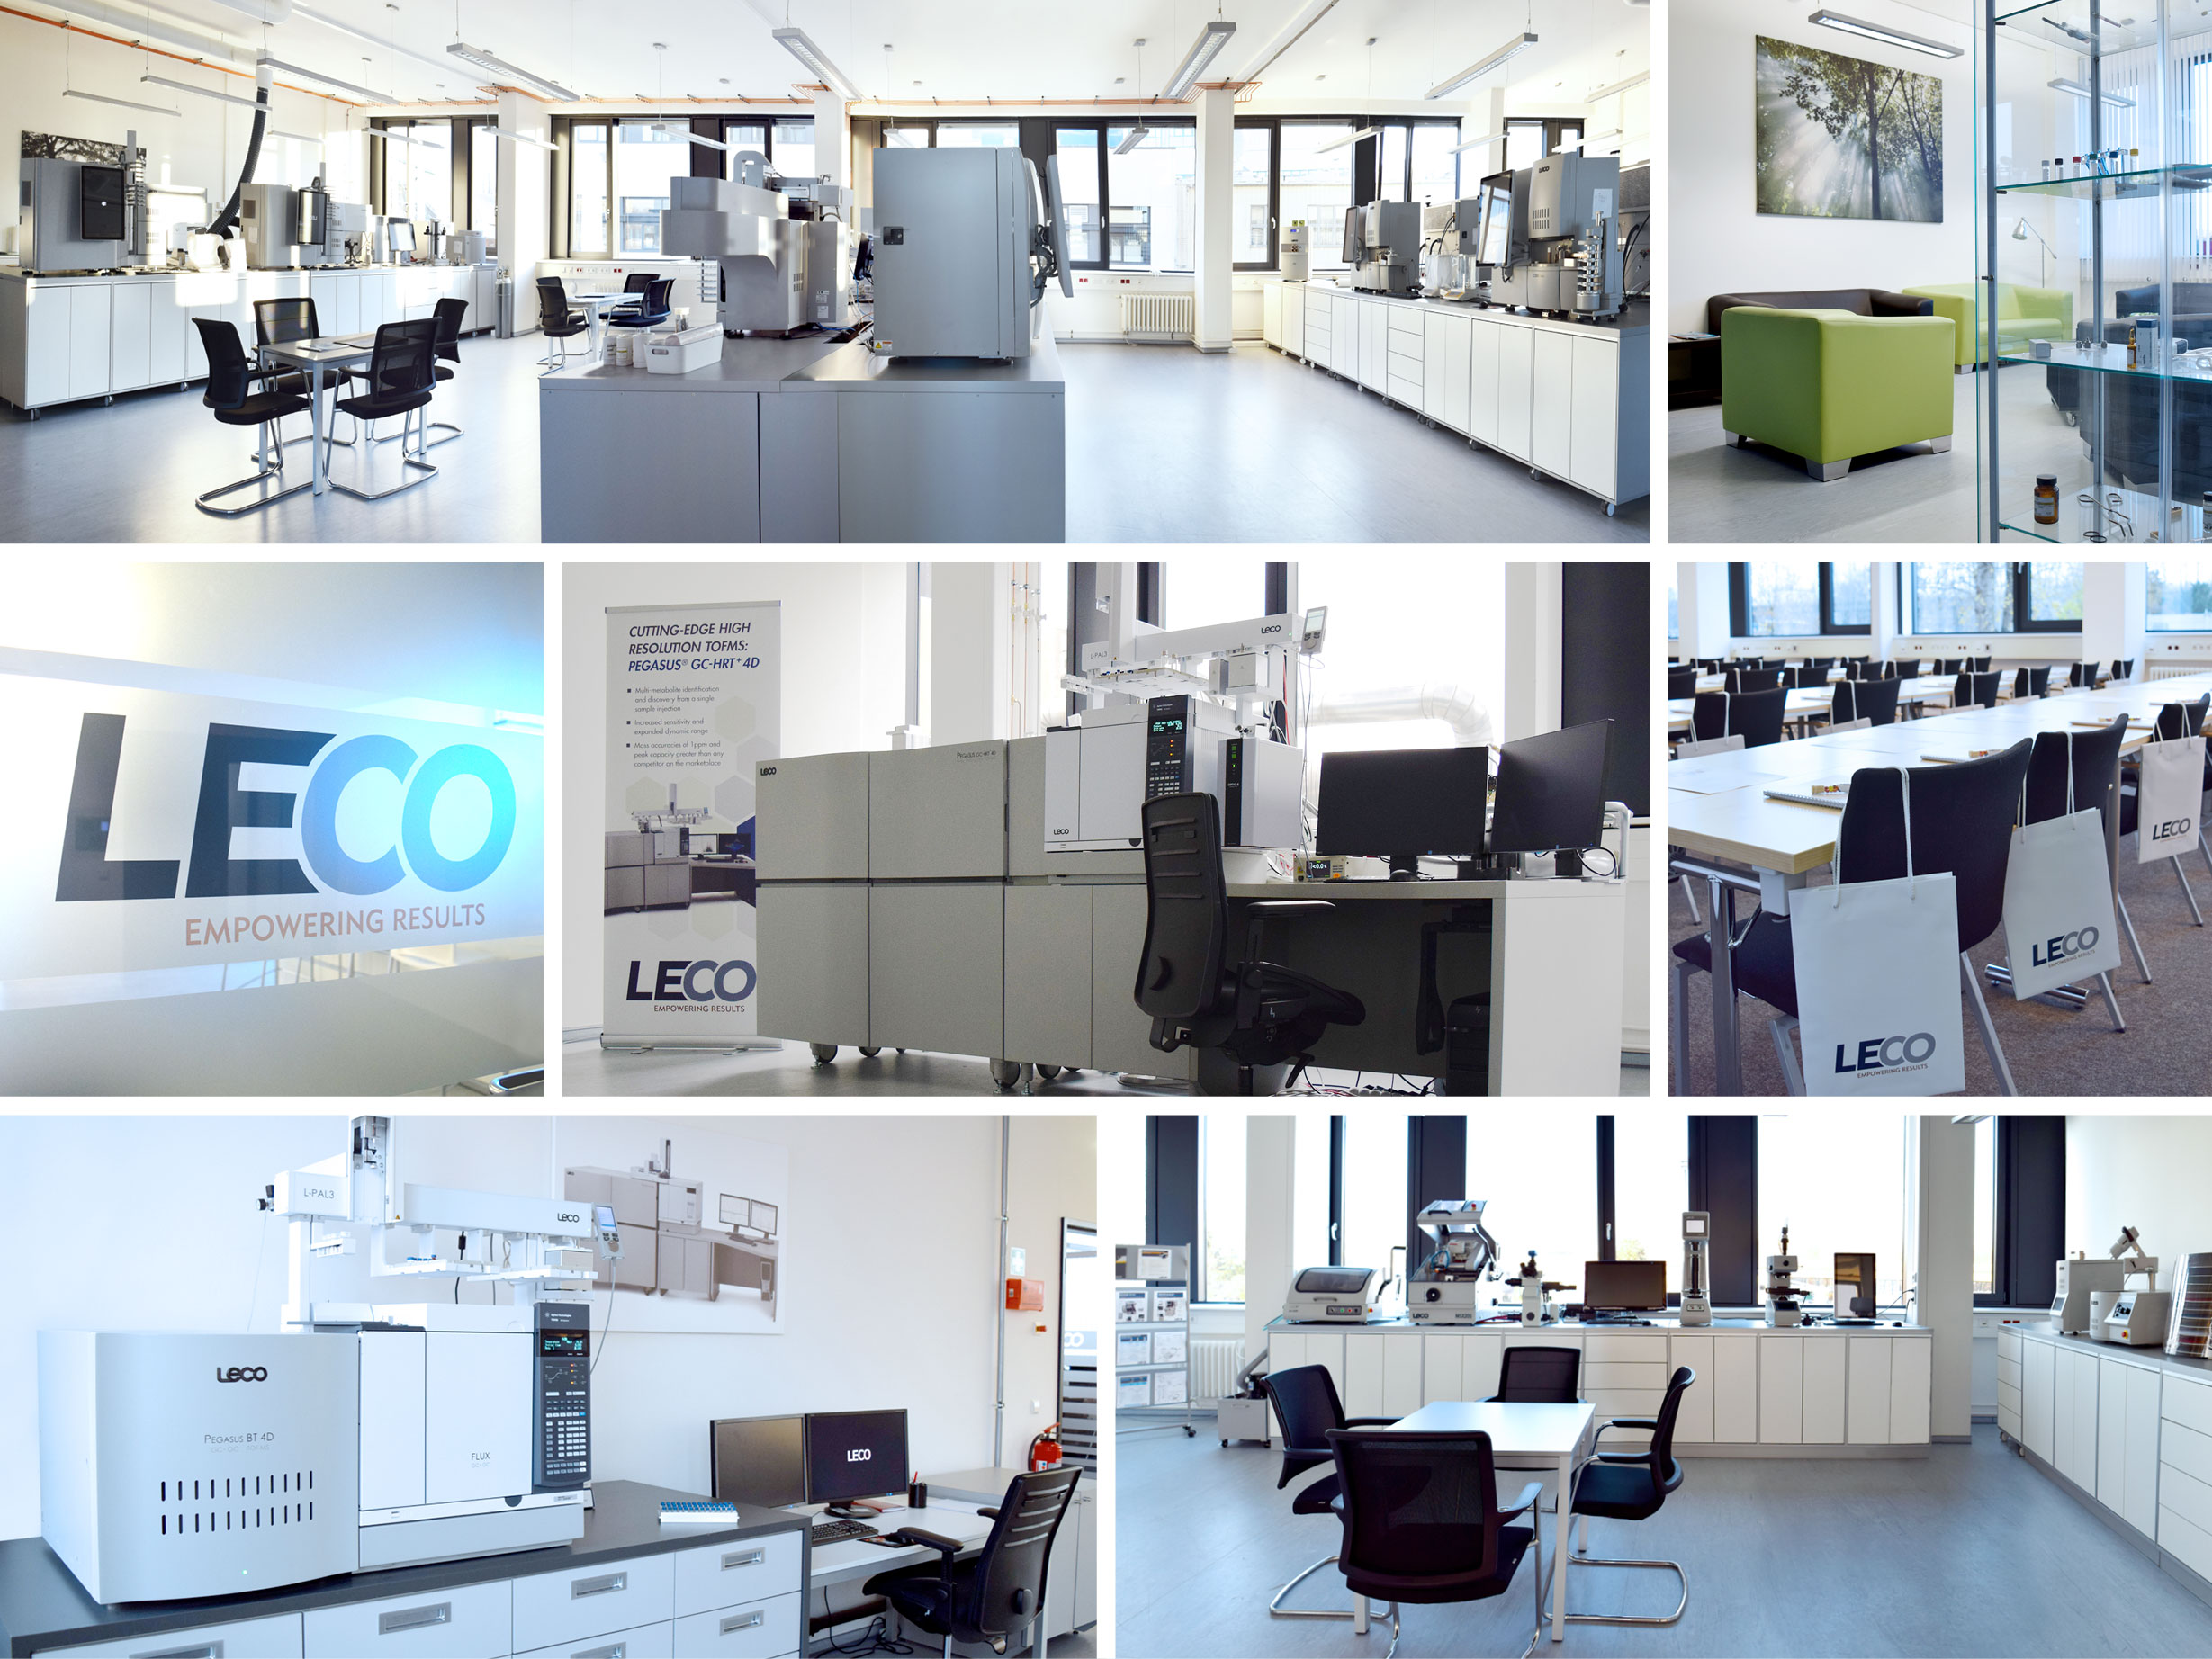 LECO European Application and Technology Center